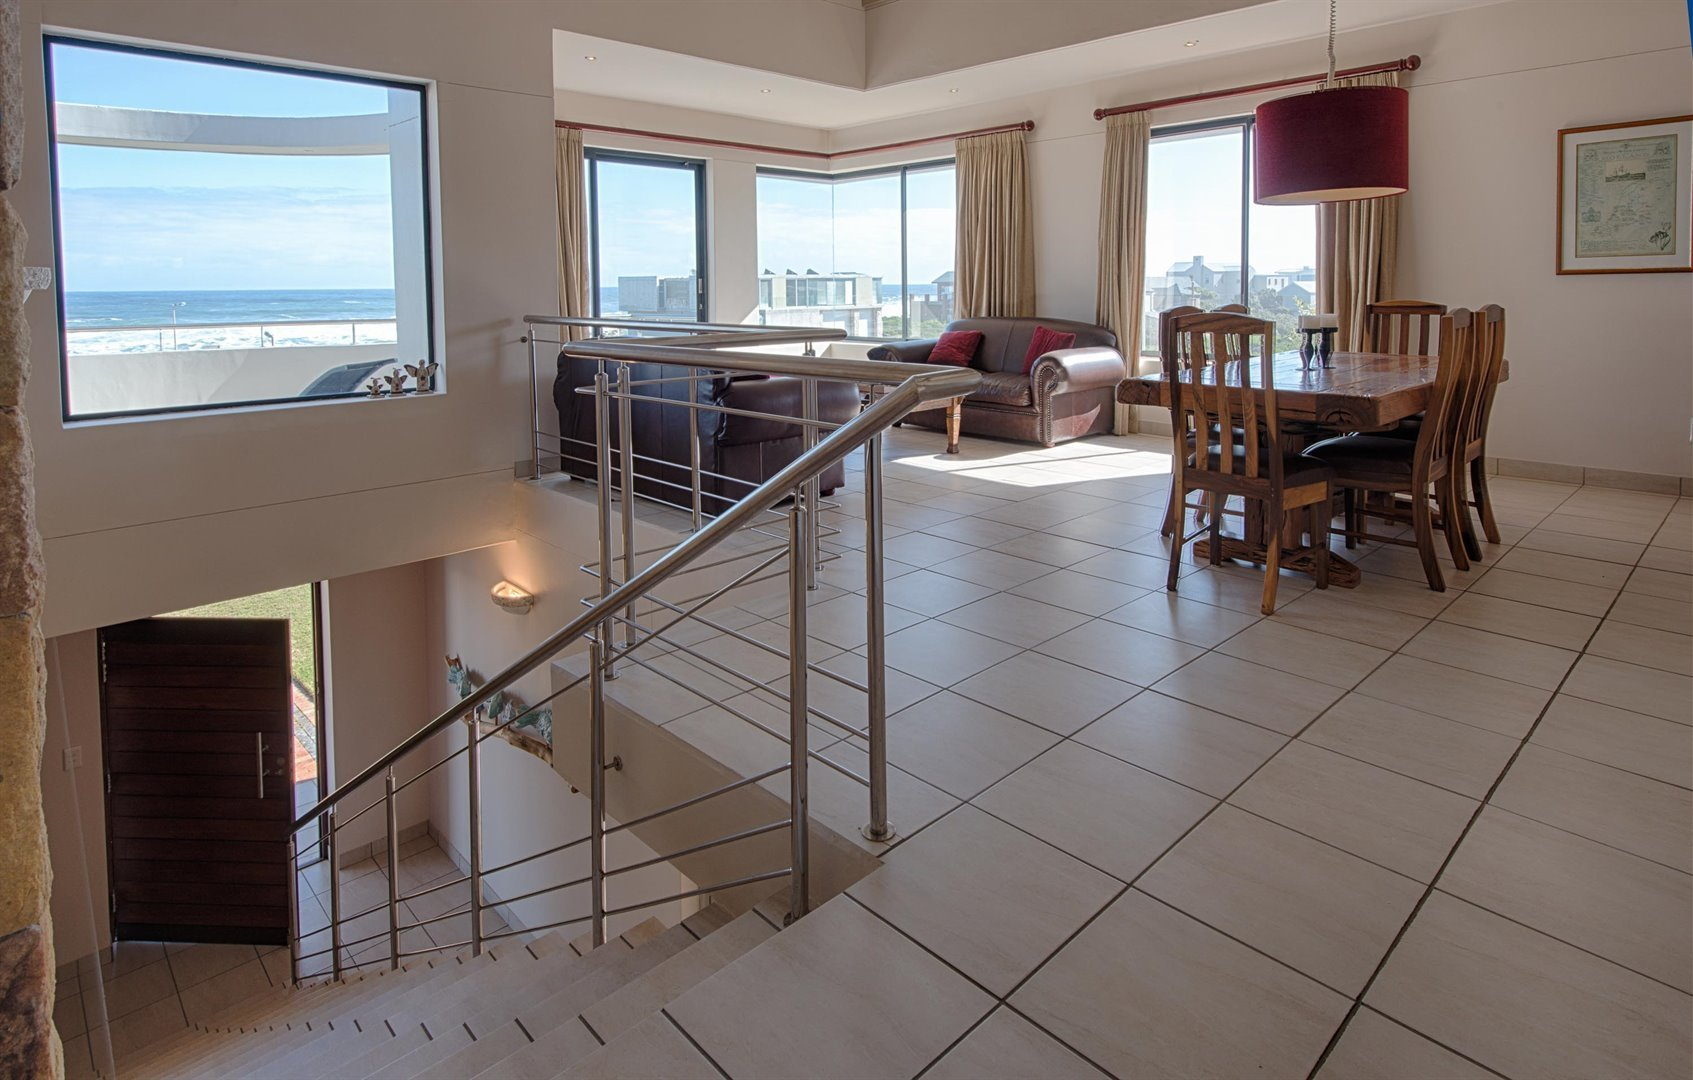 Yzerfontein property for sale. Ref No: 13373287. Picture no 65